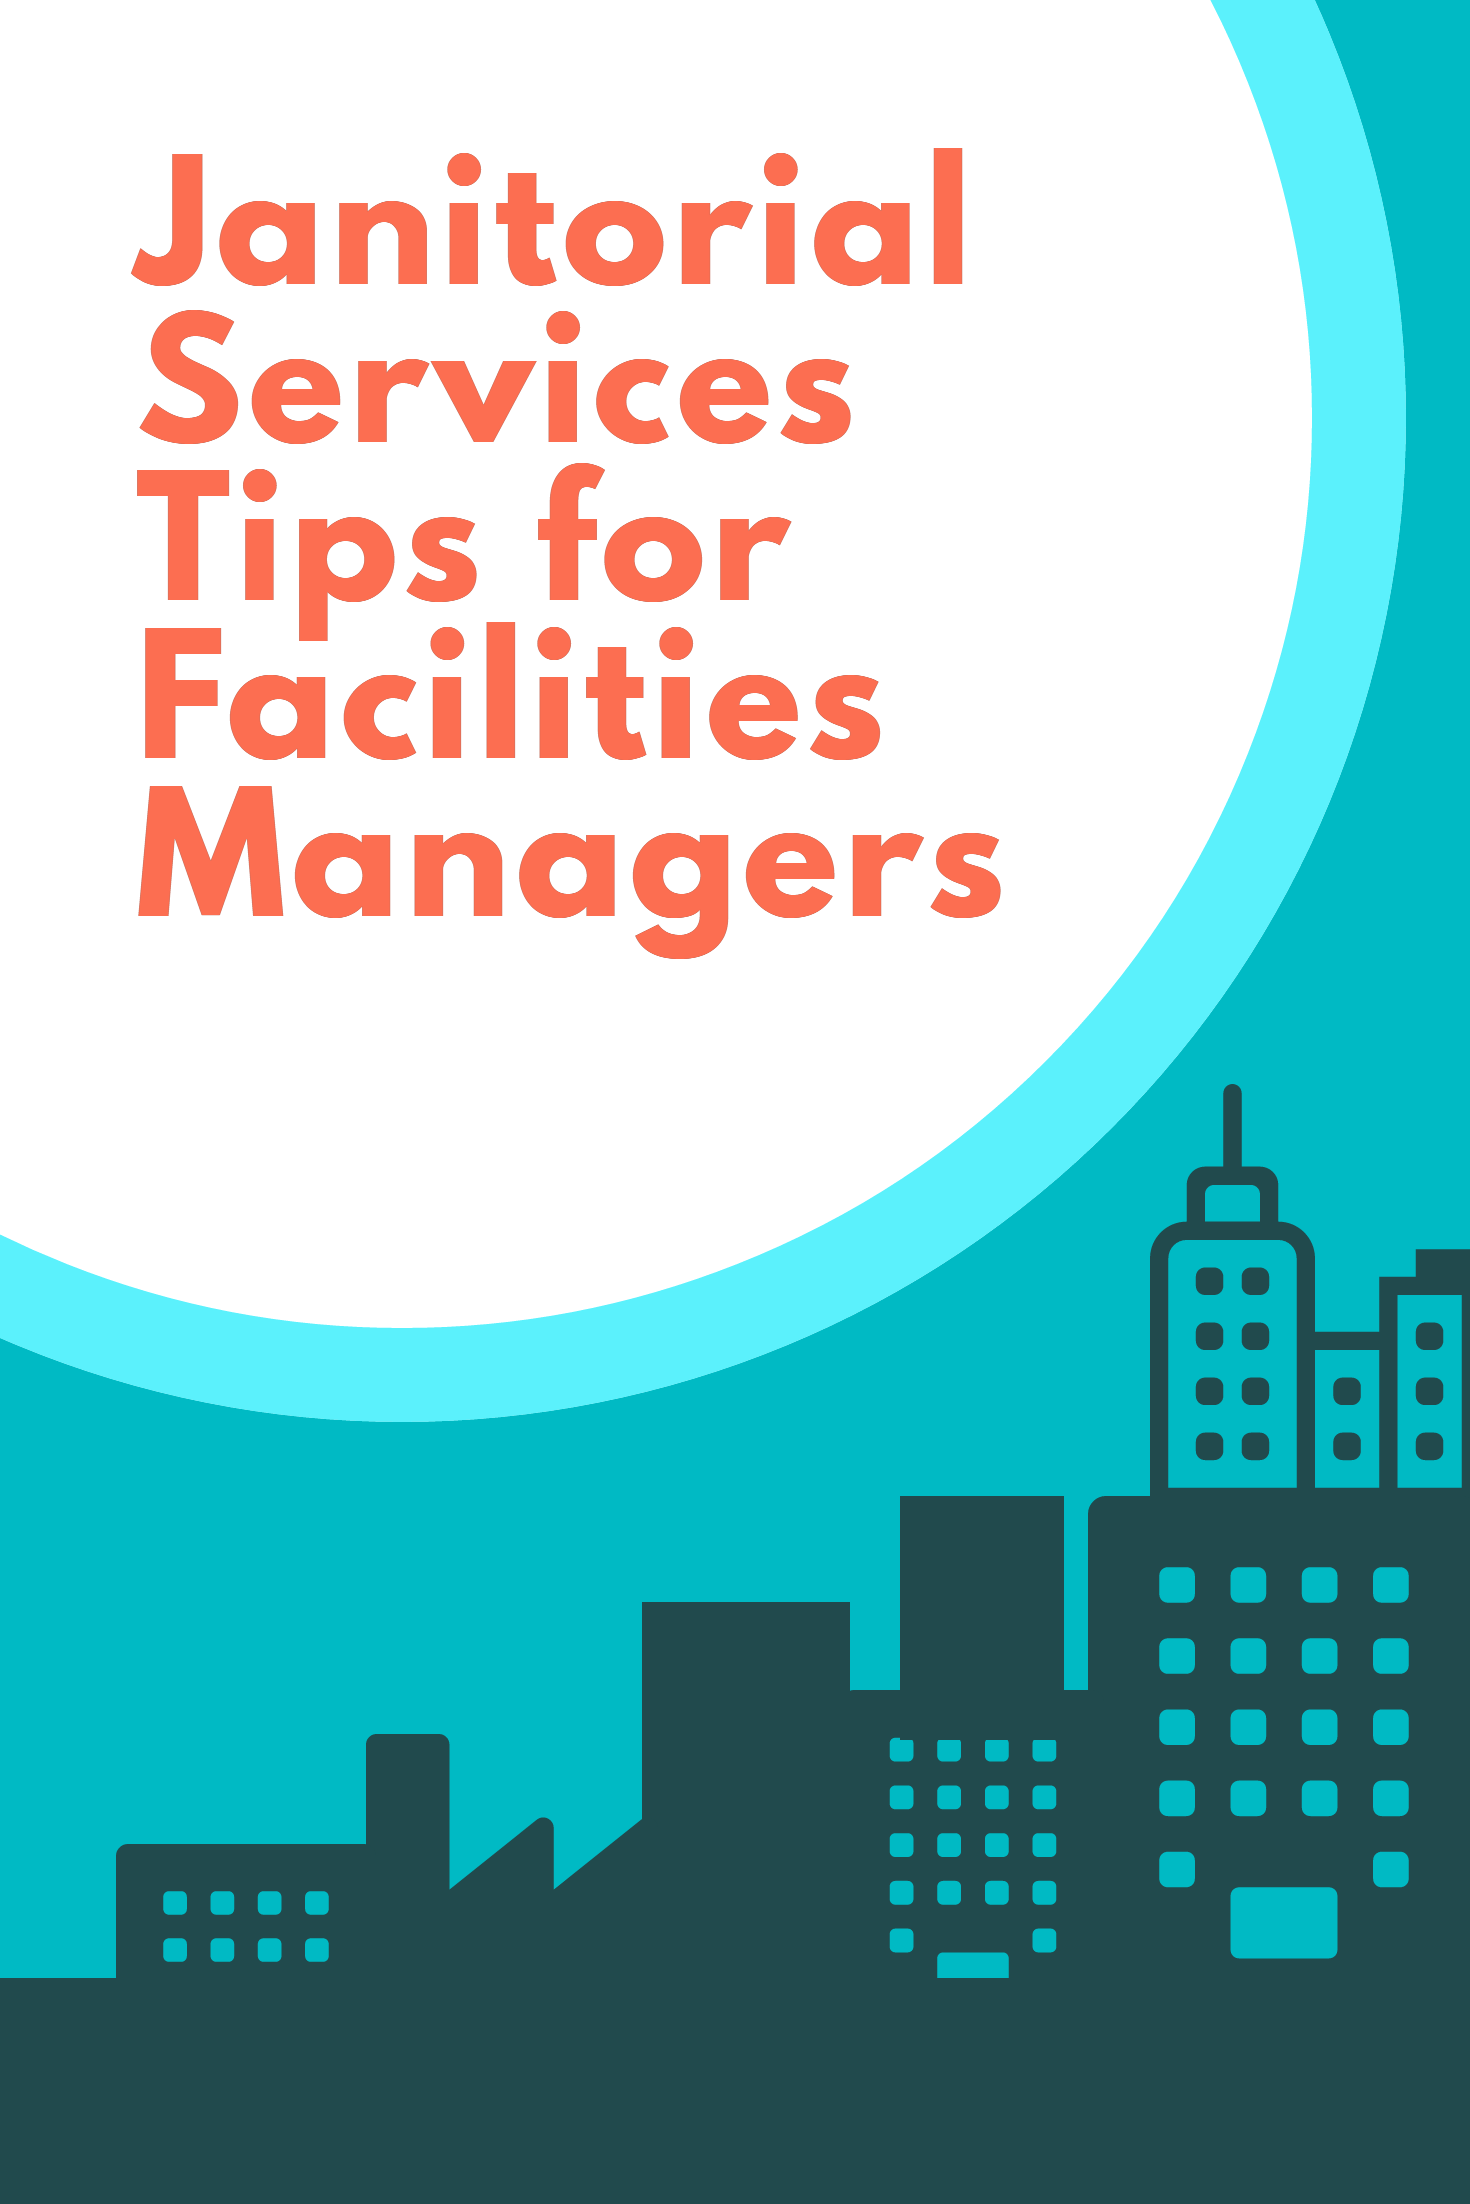 Janitorial Services Tips for Facilities Managers (With